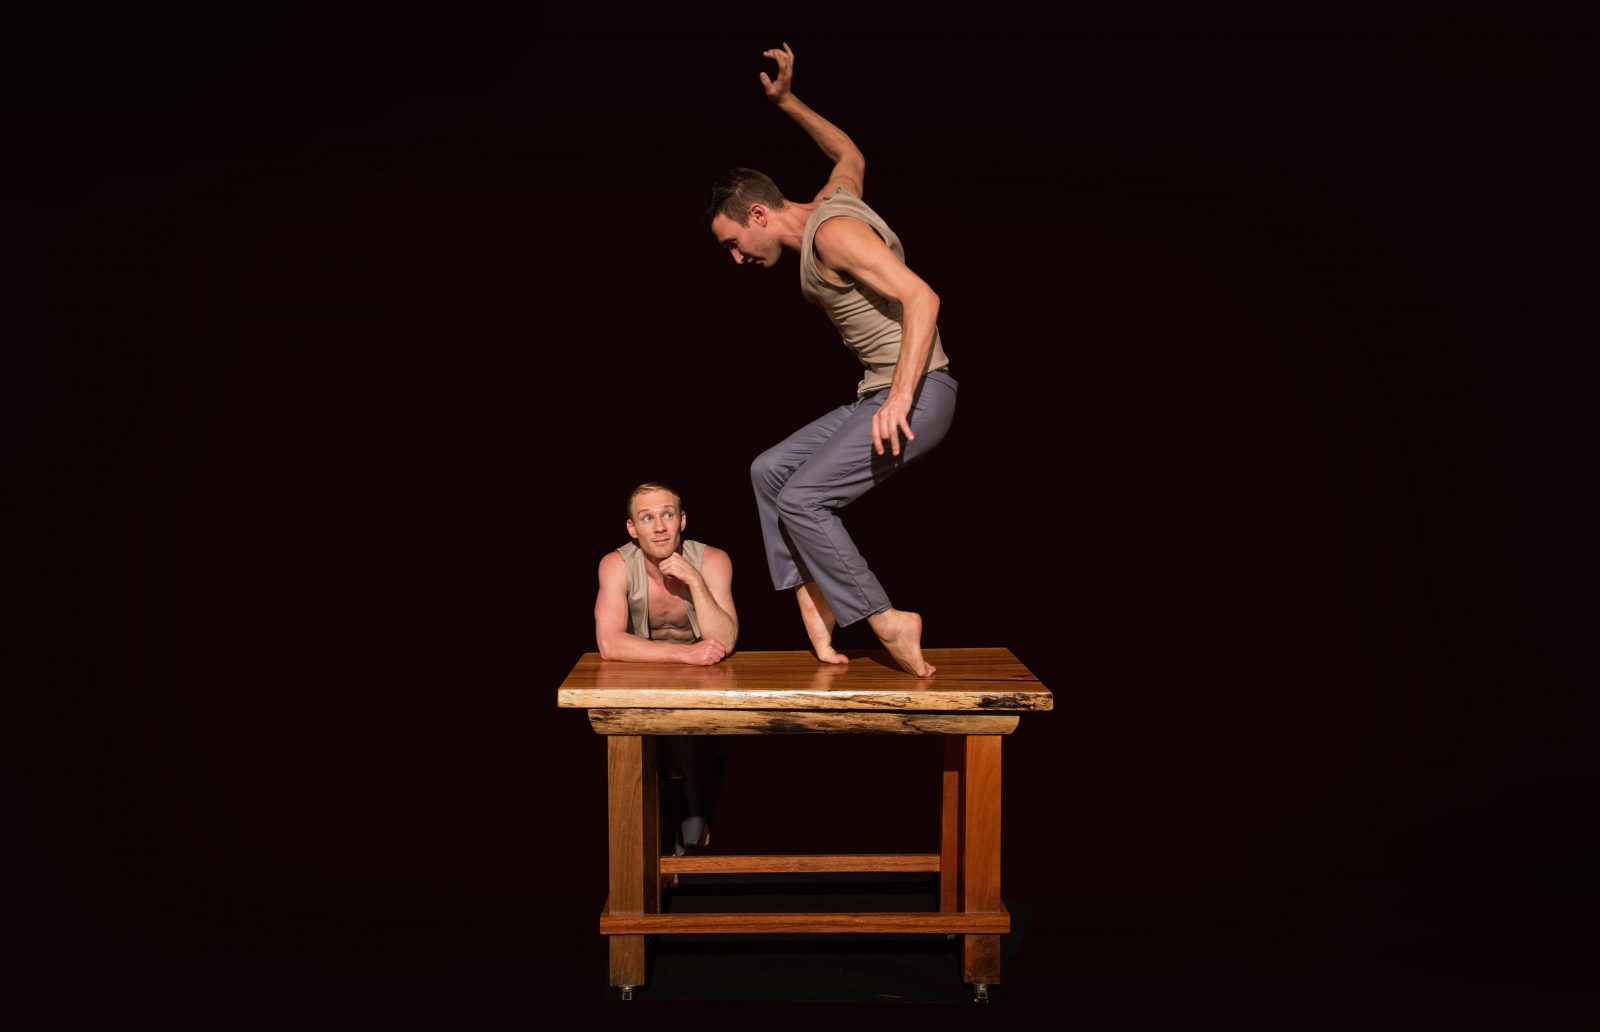 An acrobat balances on his toes on a table. Another acrobat leans on table looking up at his partner